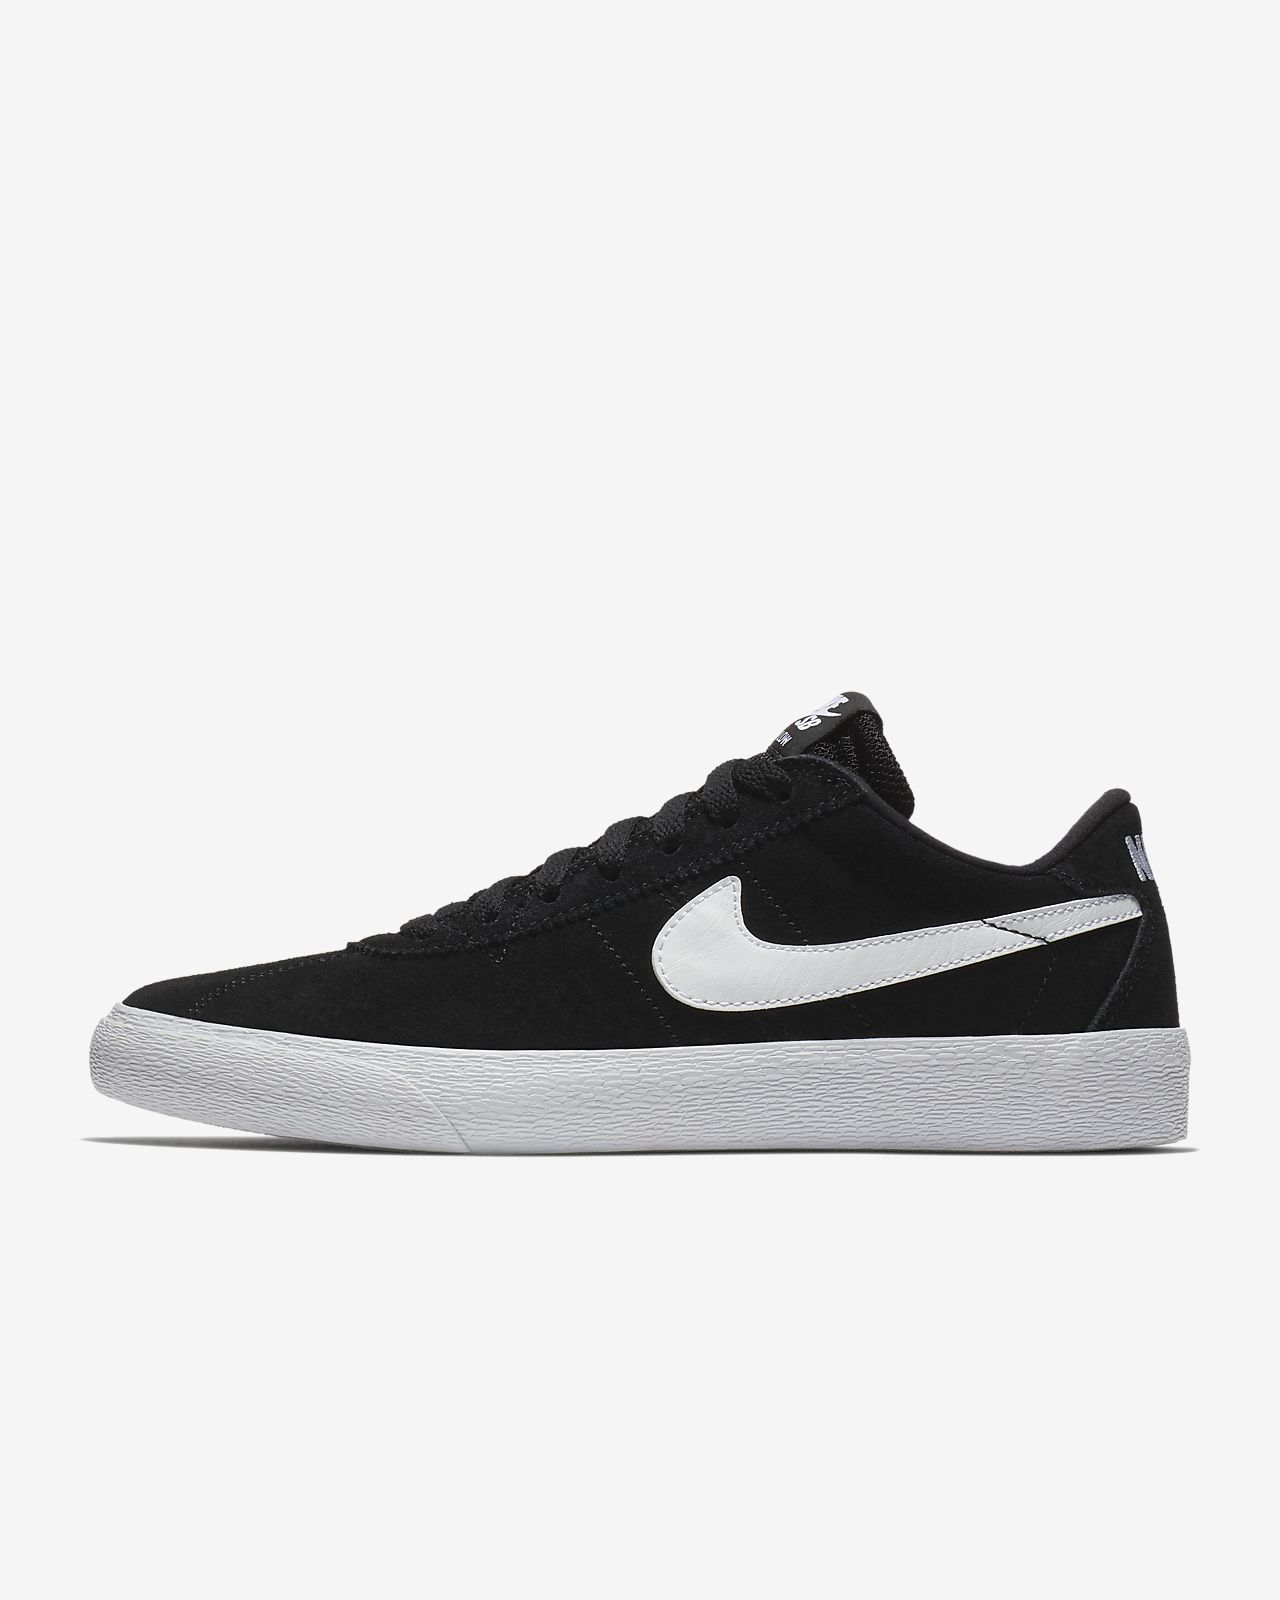 a26867df40c5 Nike SB Zoom Bruin Low Women s Skateboarding Shoe. Nike.com